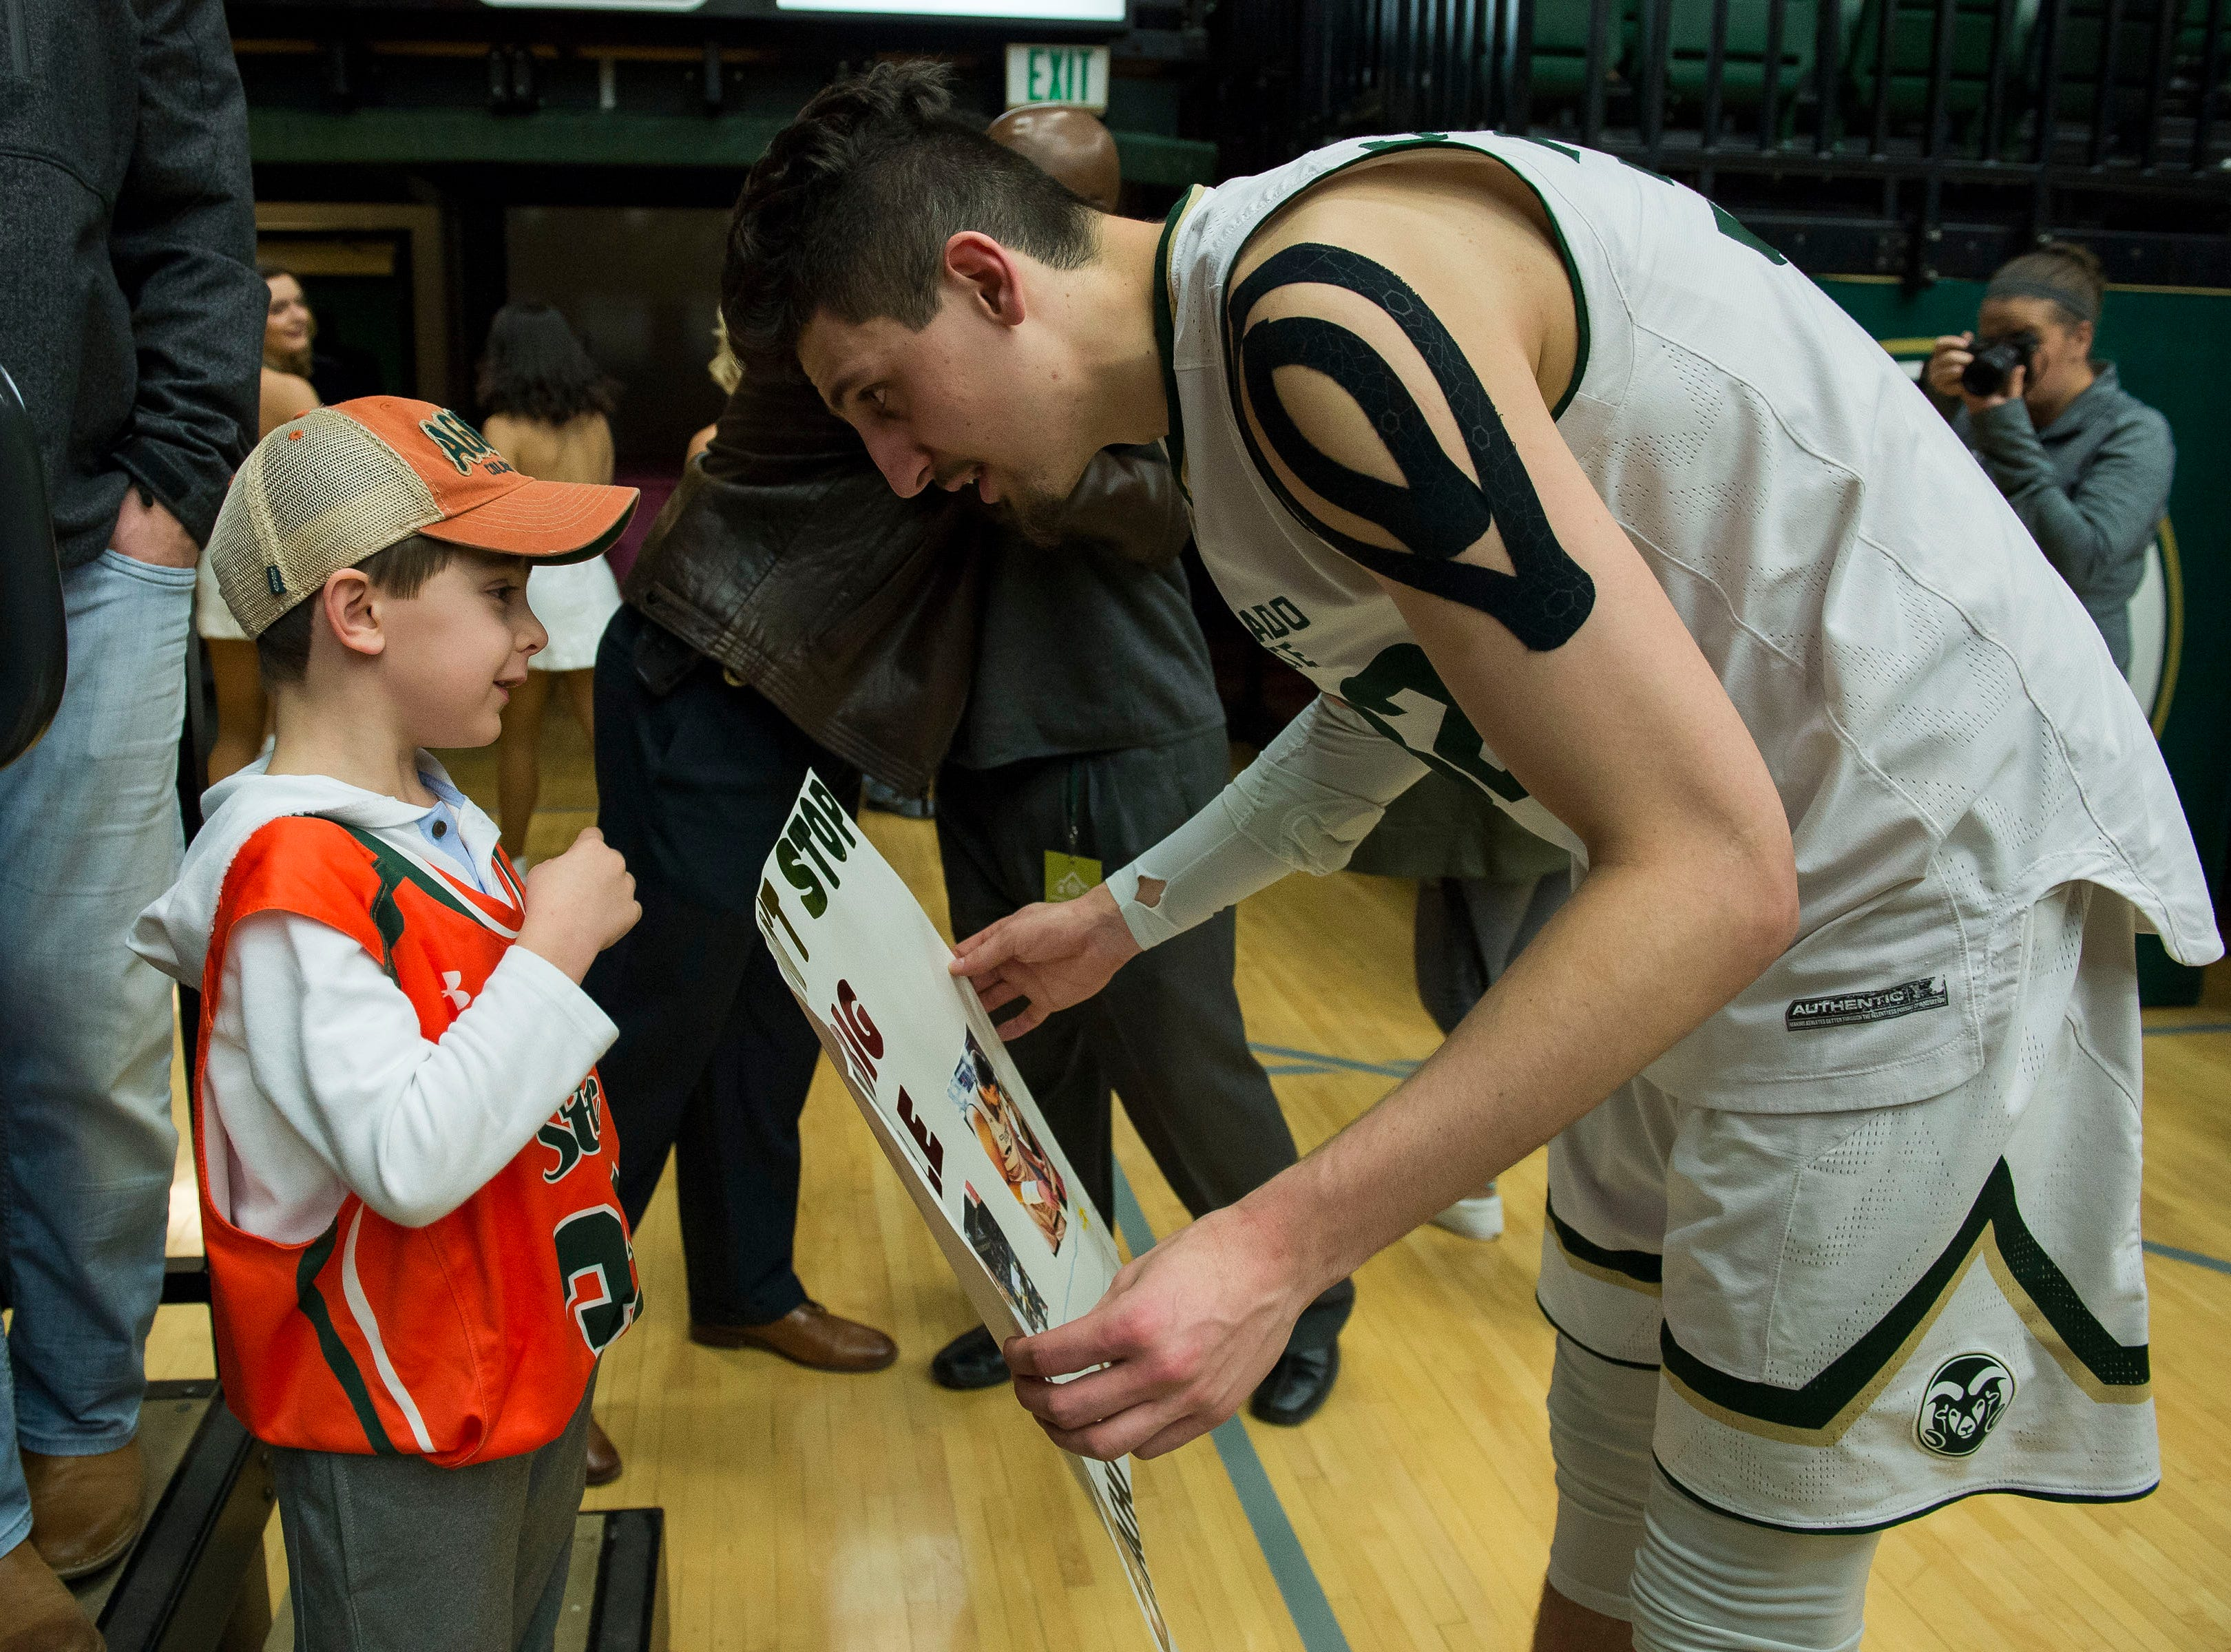 Colorado State University junior center Nico Carvacho (32) receives a home-made poster from a young fan after a game against the Air Force Academy on Tuesday, Jan. 8, 2019, at Moby Arena in Fort Collins, Colo.